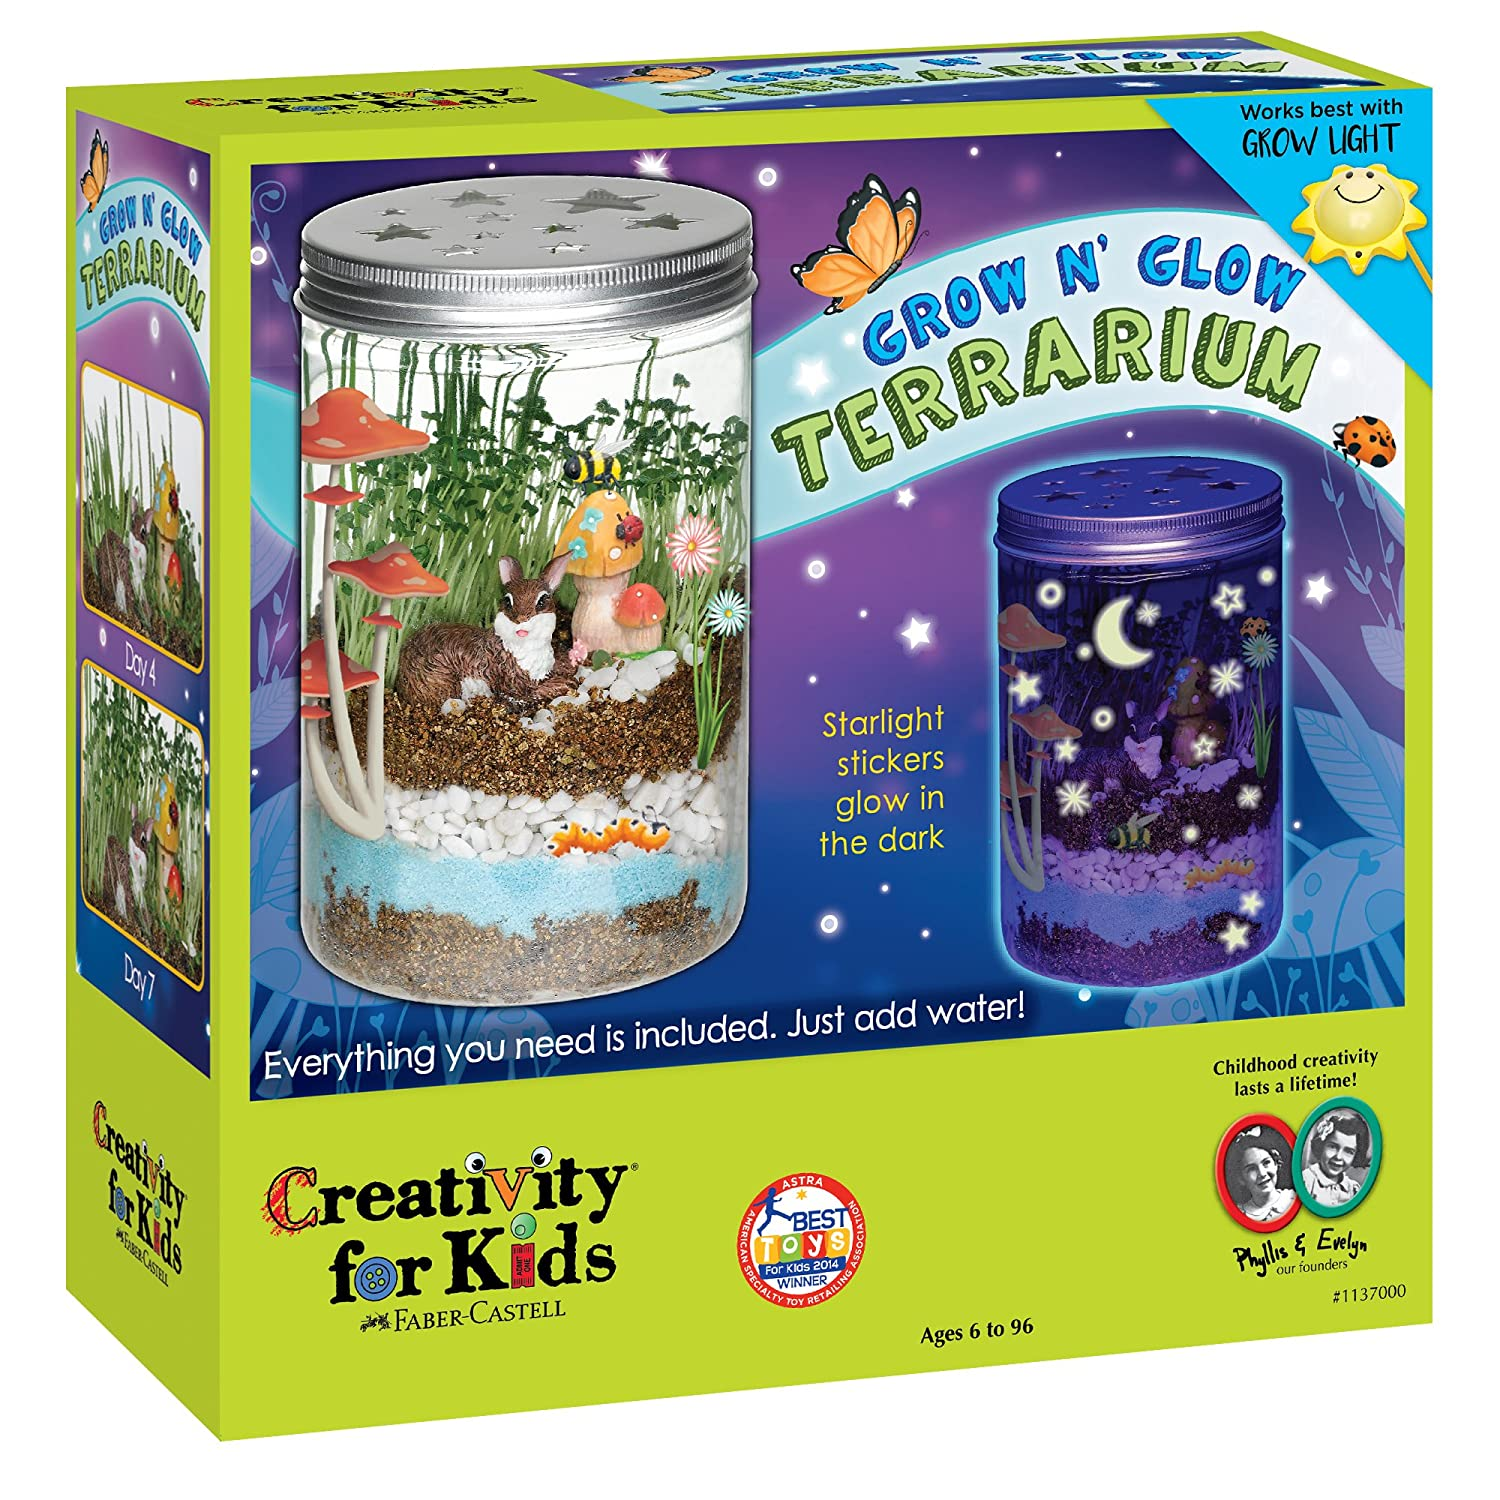 Amazon Creativity for Kids Grow n Glow Terrarium Science